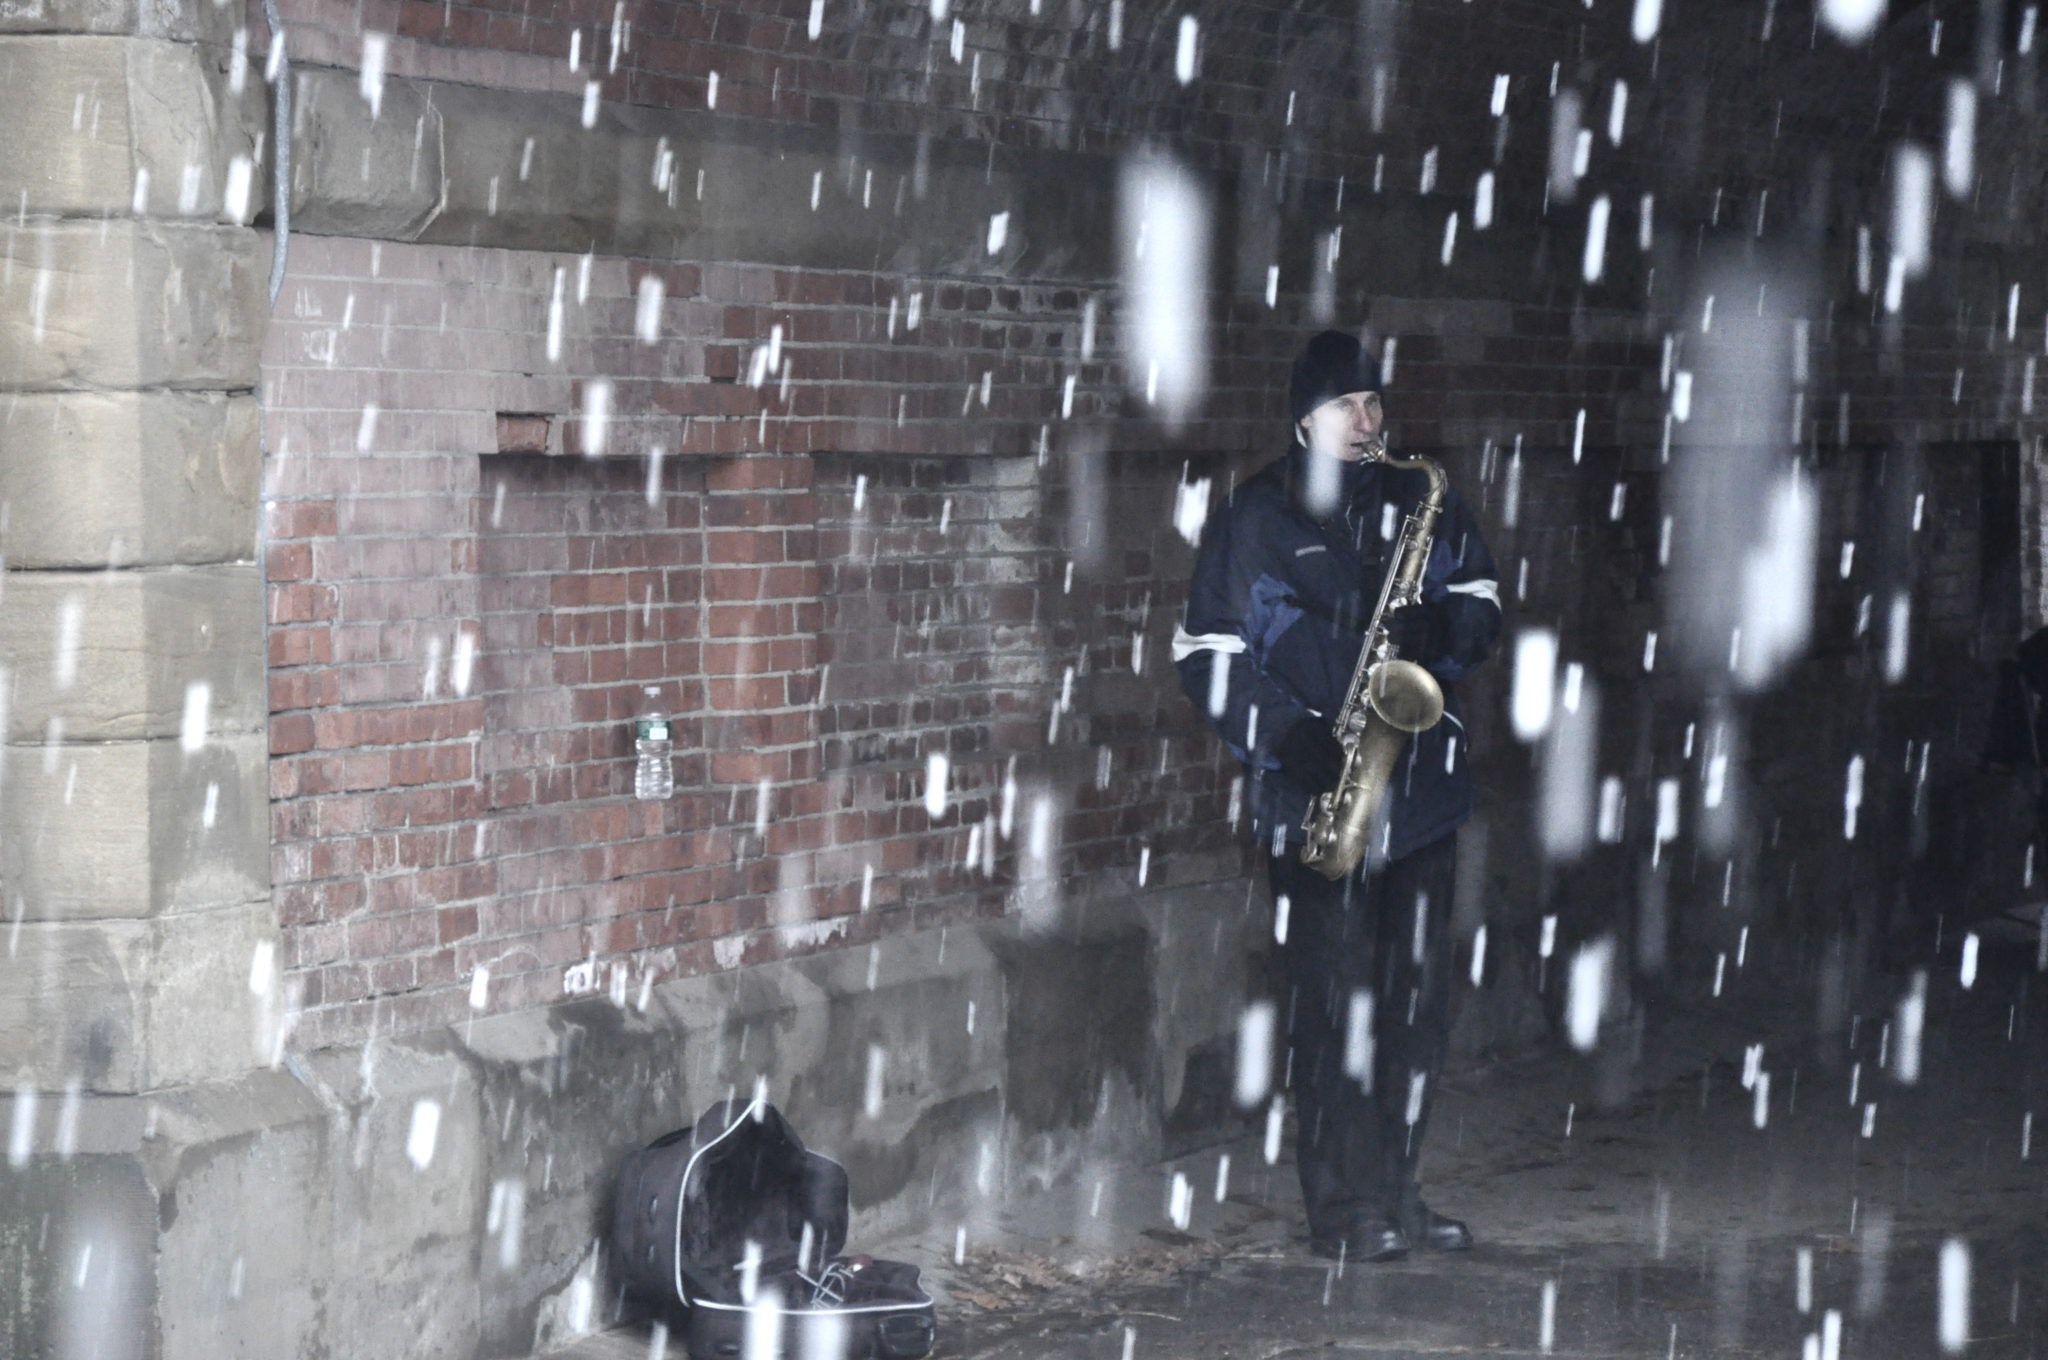 Saxophonist In The Snow